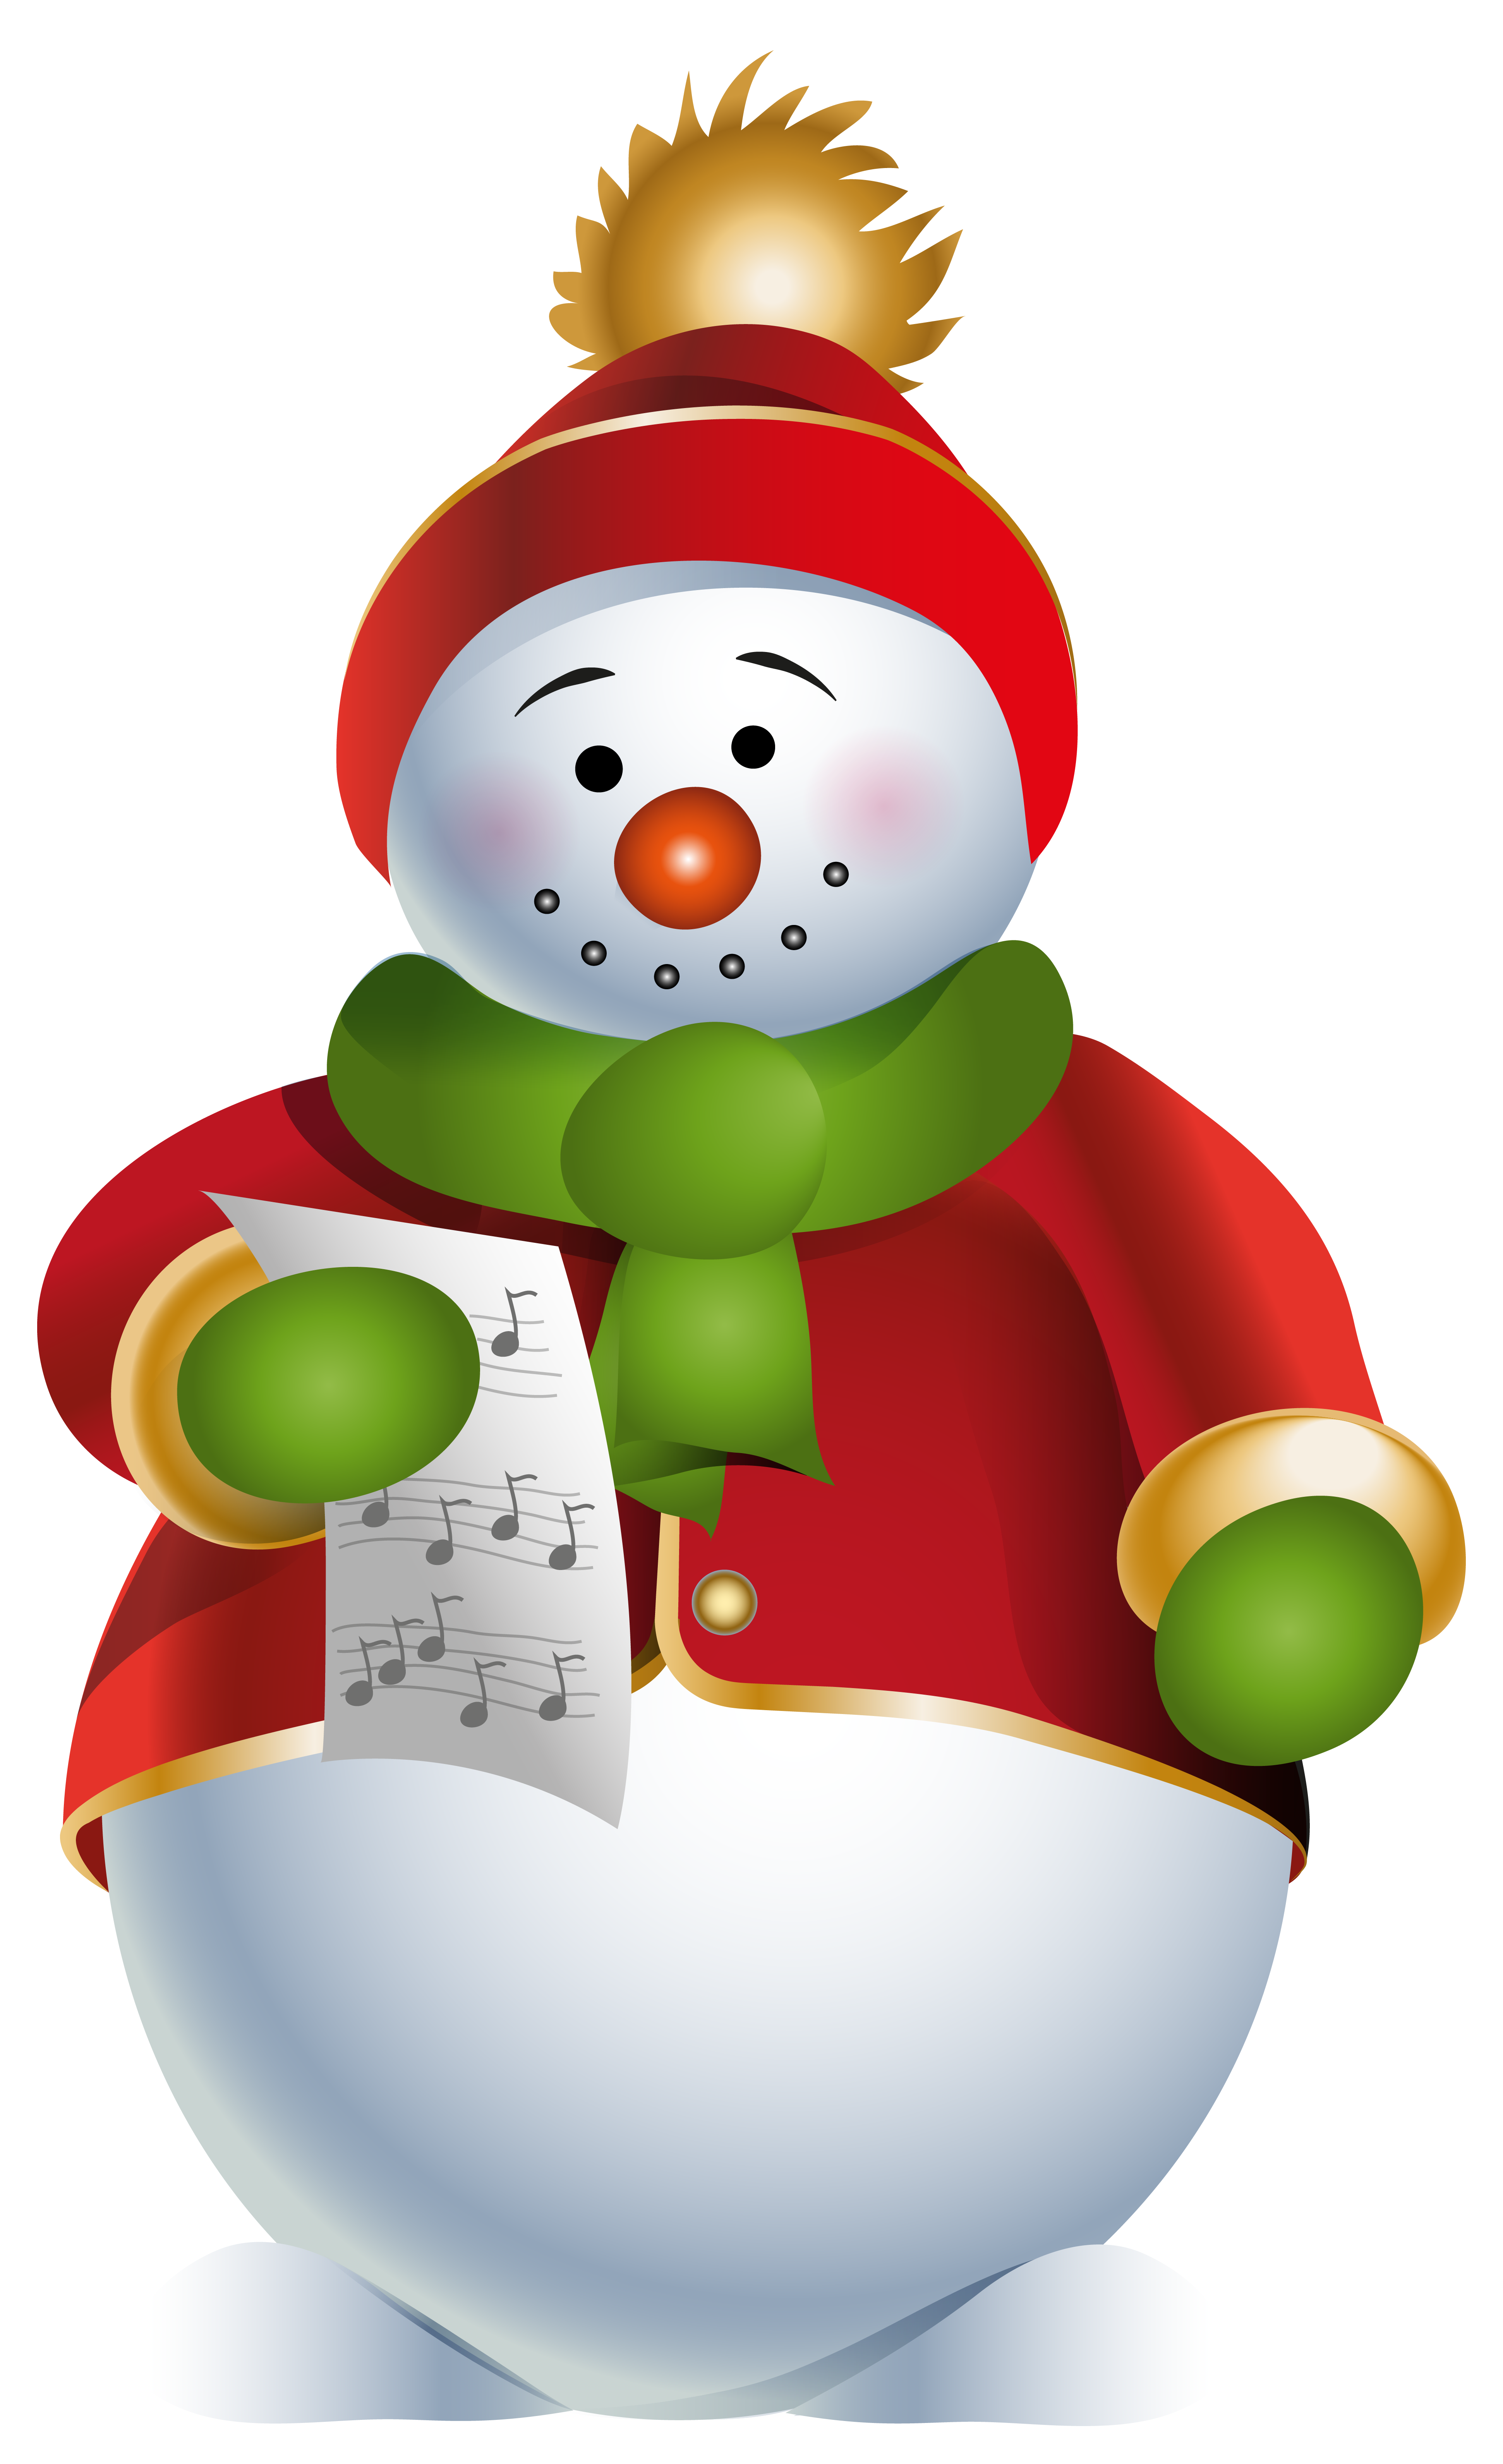 Snowman Transparent Png Clip Art Image Gallery Yopriceville Christmas Drawing Snowmen Pictures Christmas Images